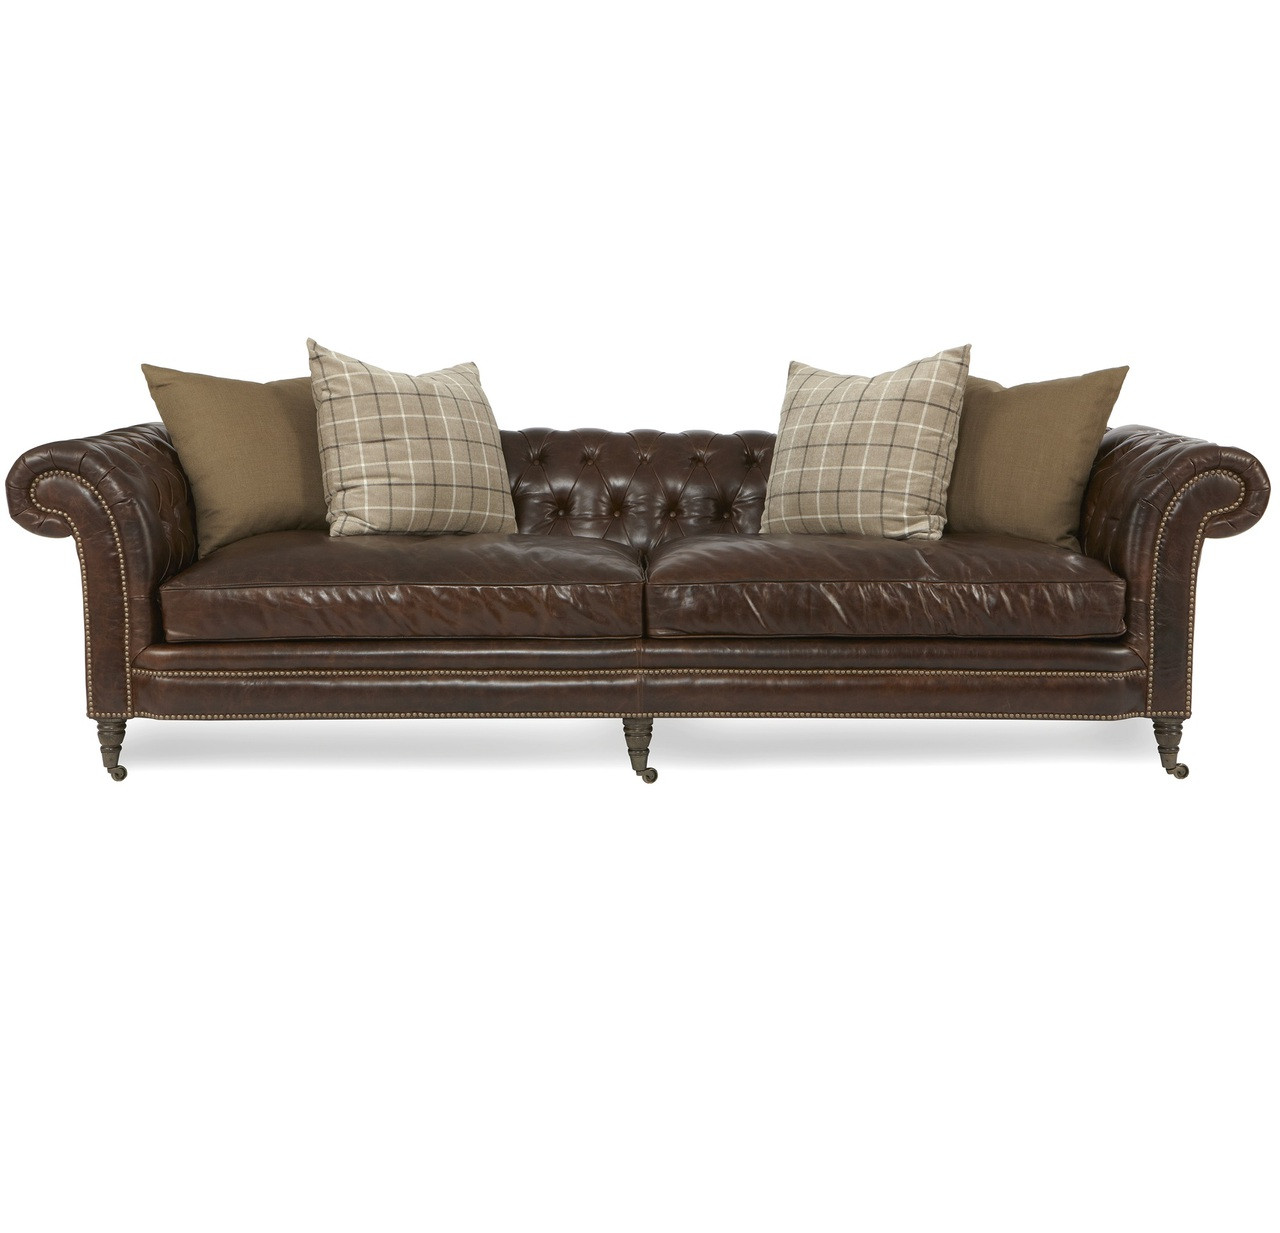 112 lancaster leather sofa american king sleeper lauren cigar club tufted chesterfield